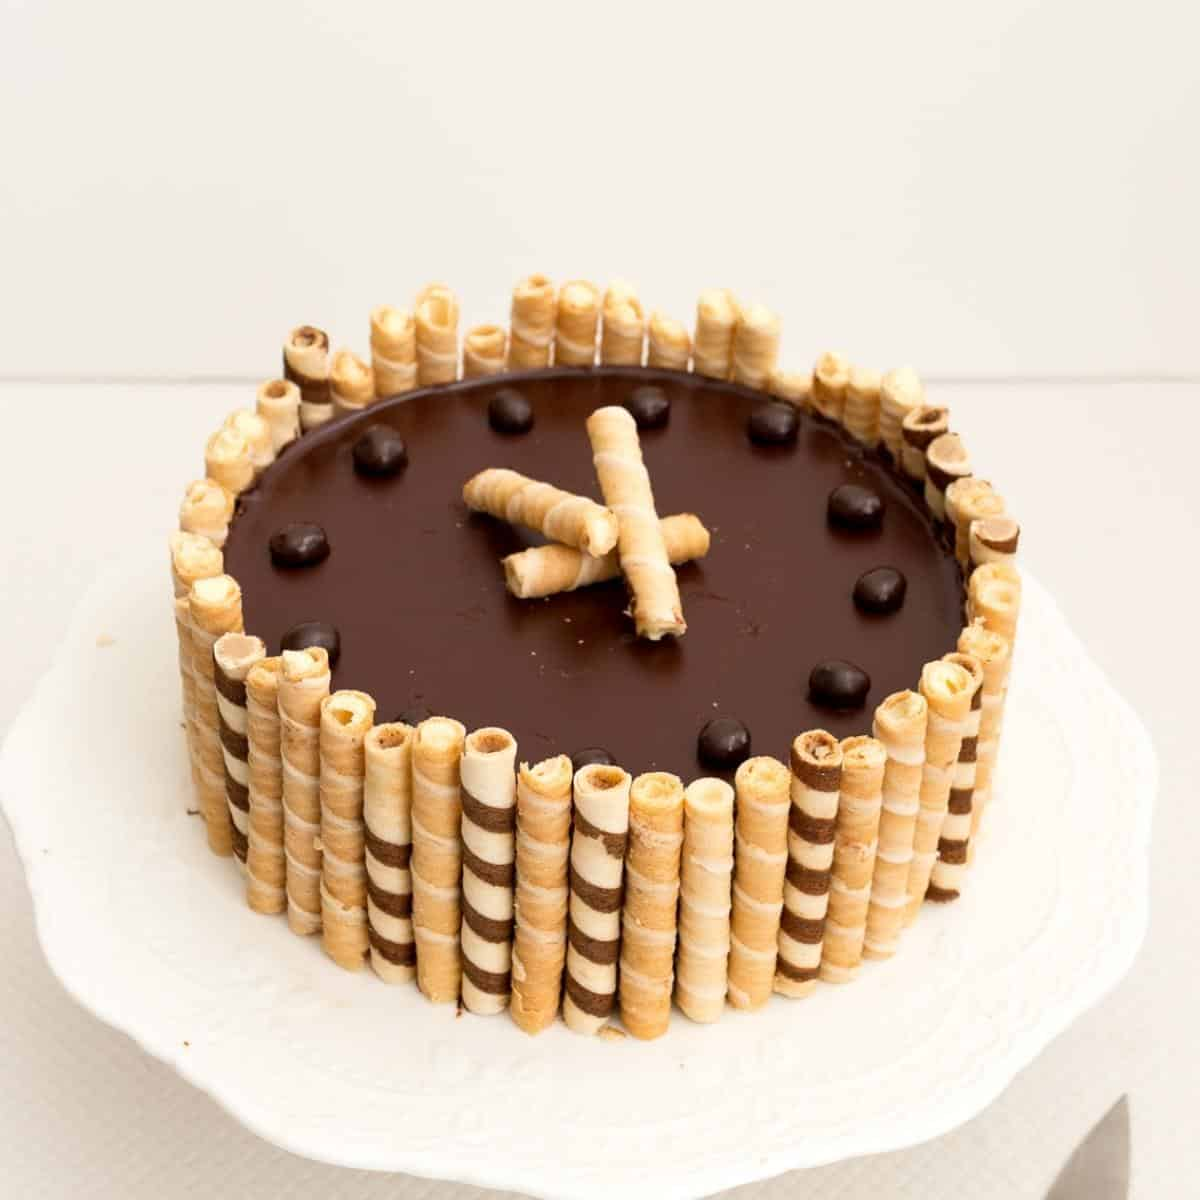 A glutenfree chocolate cake with wafers on cake stand.